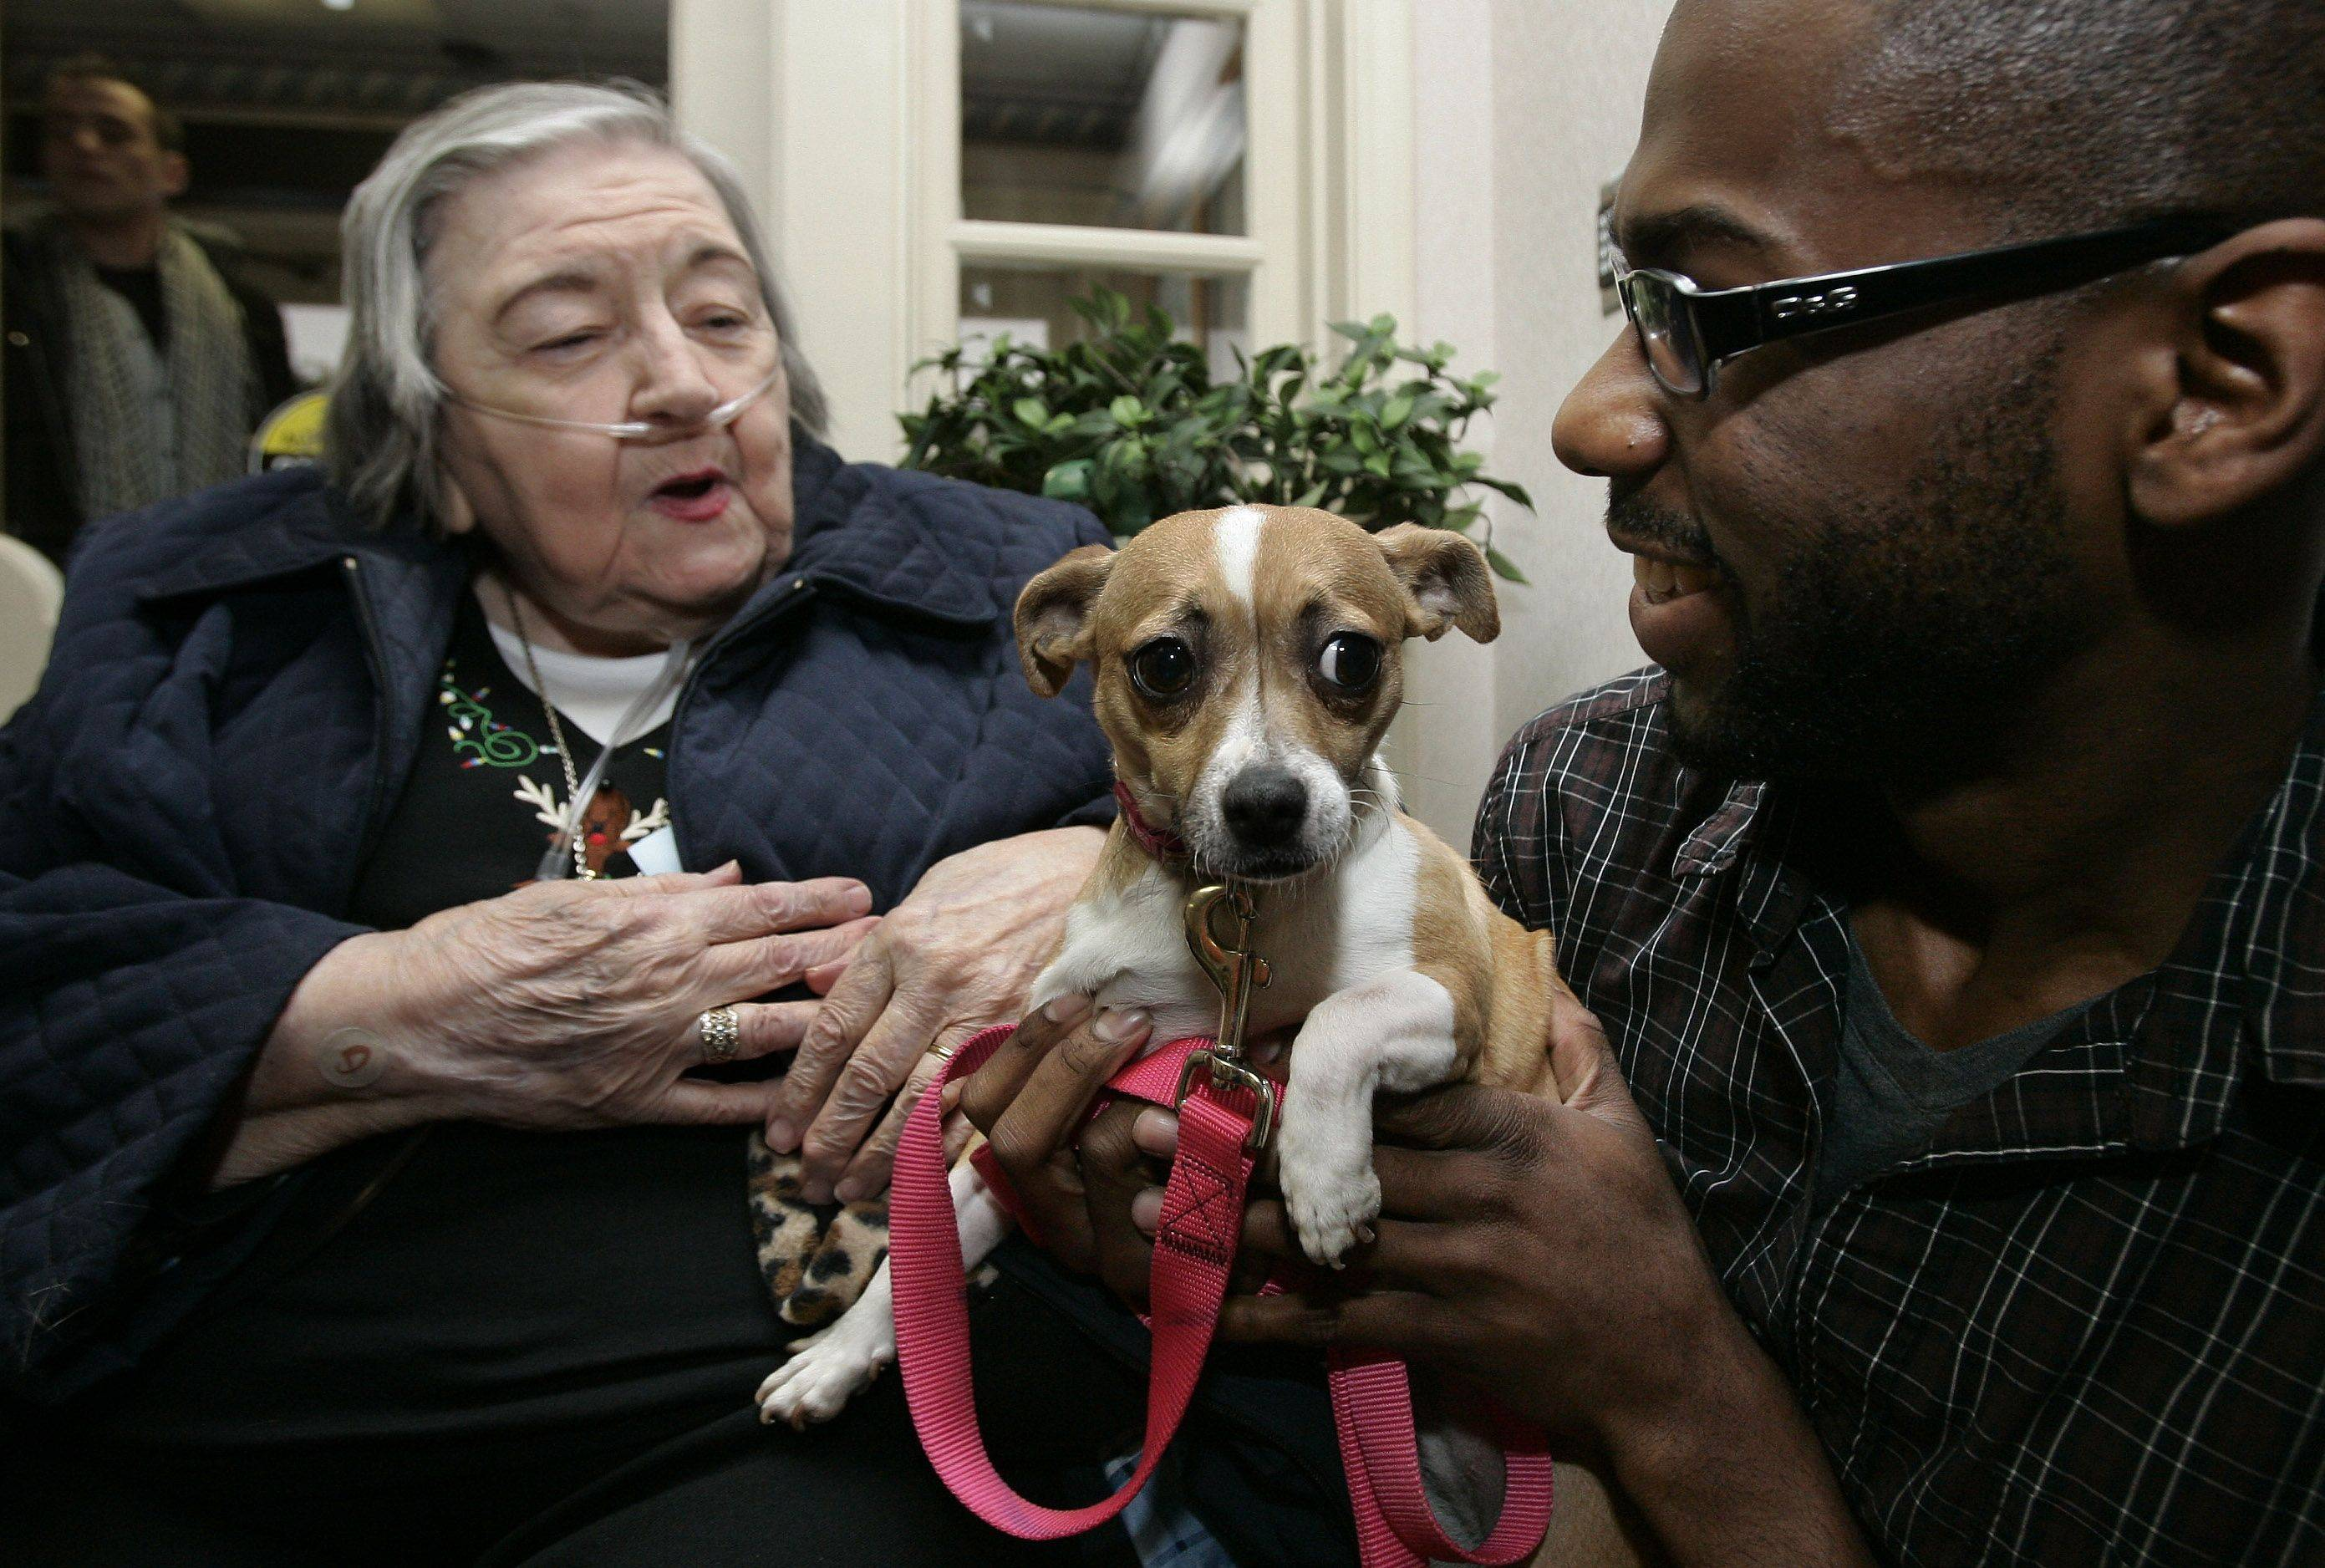 Manor Care resident Cecilia Zemnick pets Binky held by volunteer Corey Brinson of Waukegan Christmas day in Libertyville.